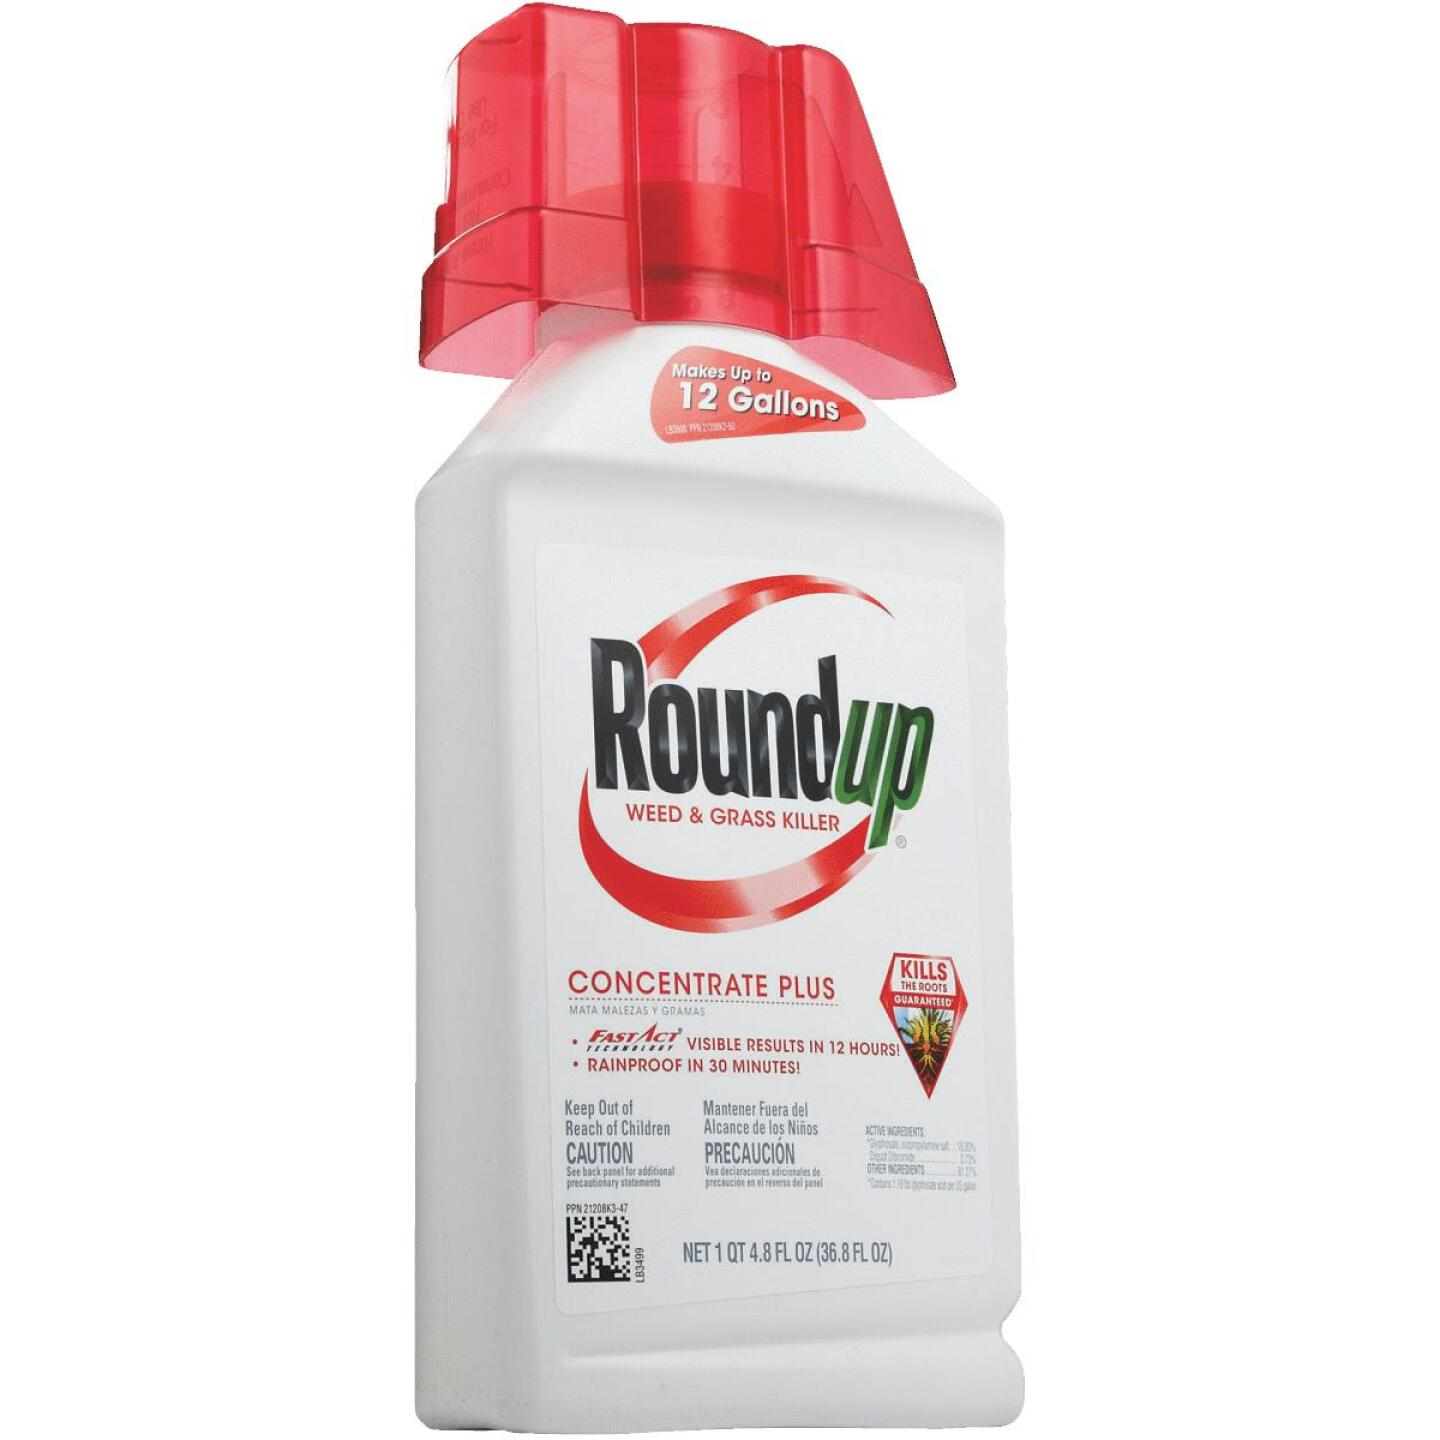 Roundup 36.8 Oz. Concentrate Plus Weed & Grass Killer Image 3